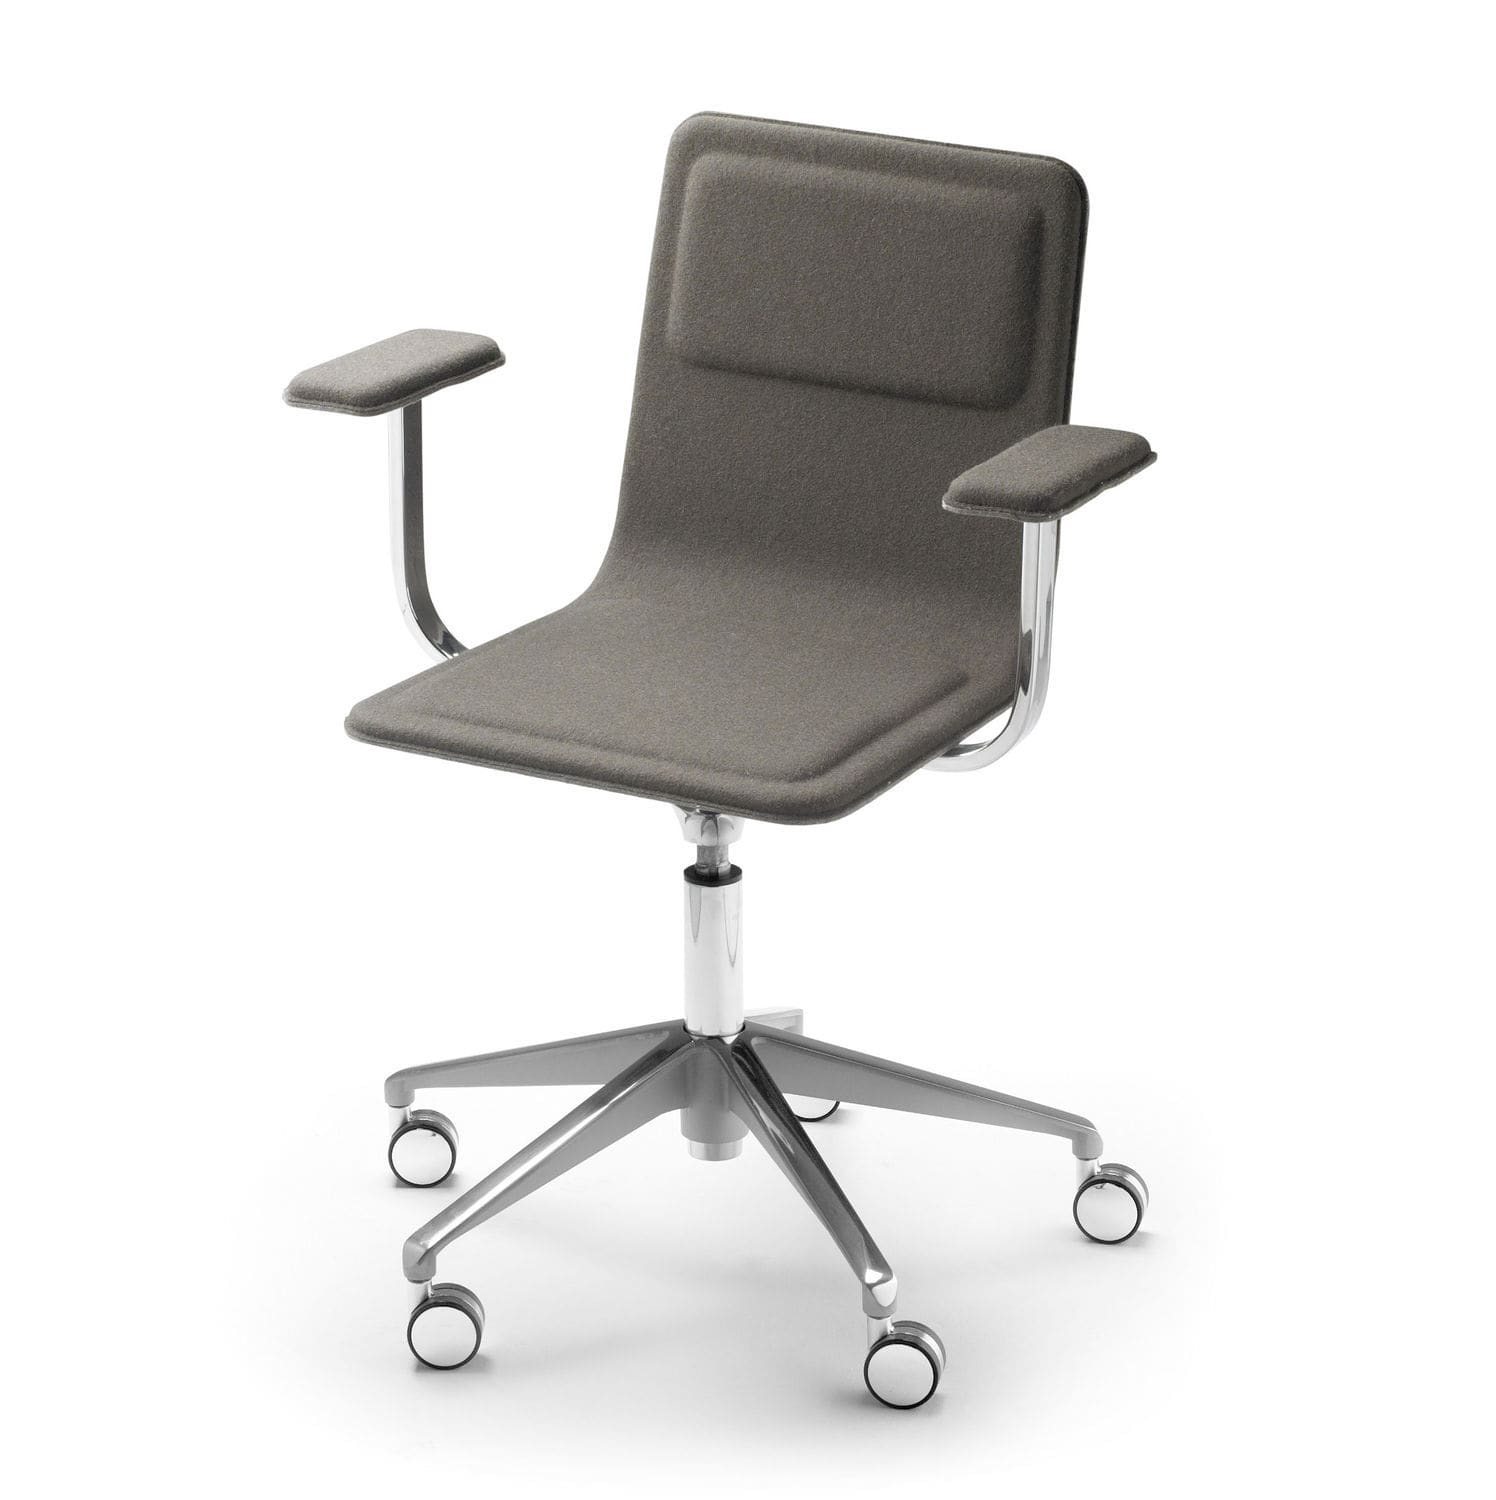 Contemporary office chair fabric leather felt LAIA by Jean